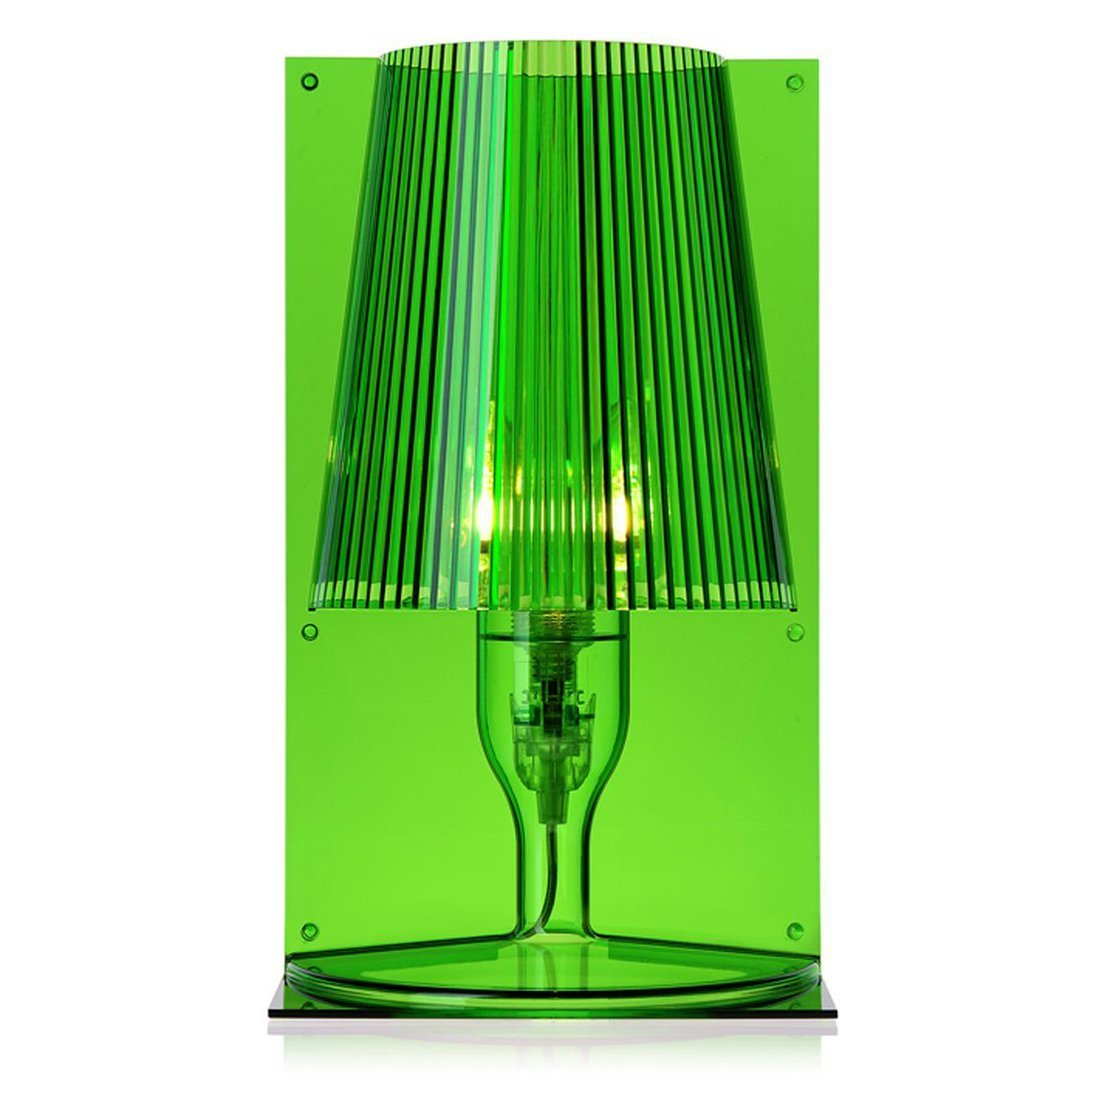 Kartell Take Tafellamp - Groen